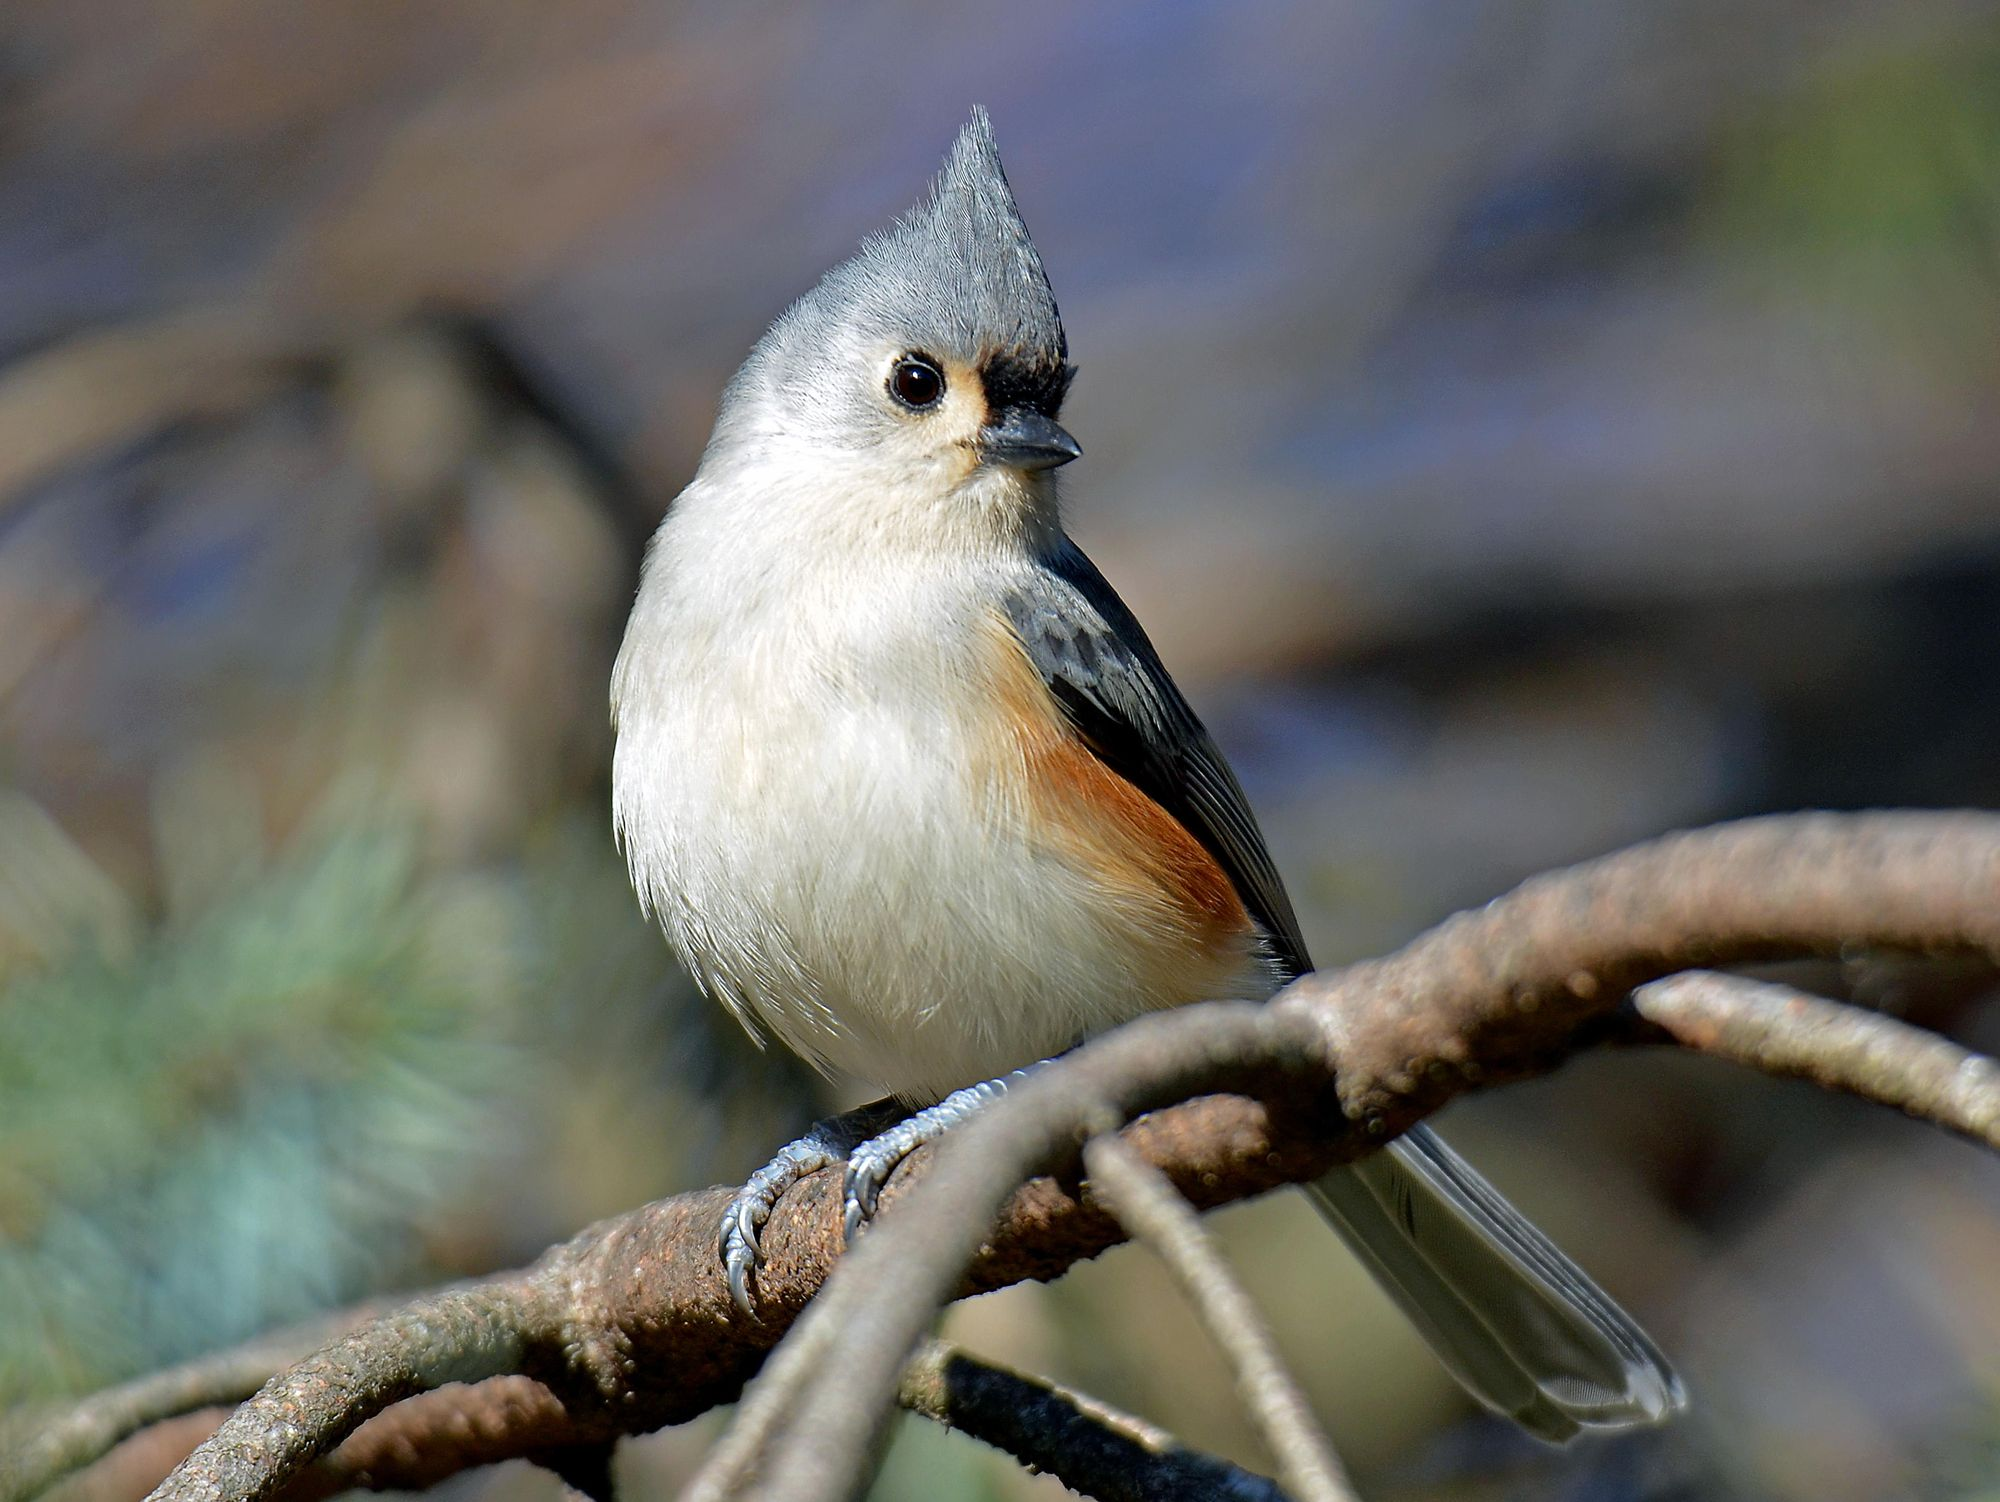 Tufted Titmouse in an Evergreen